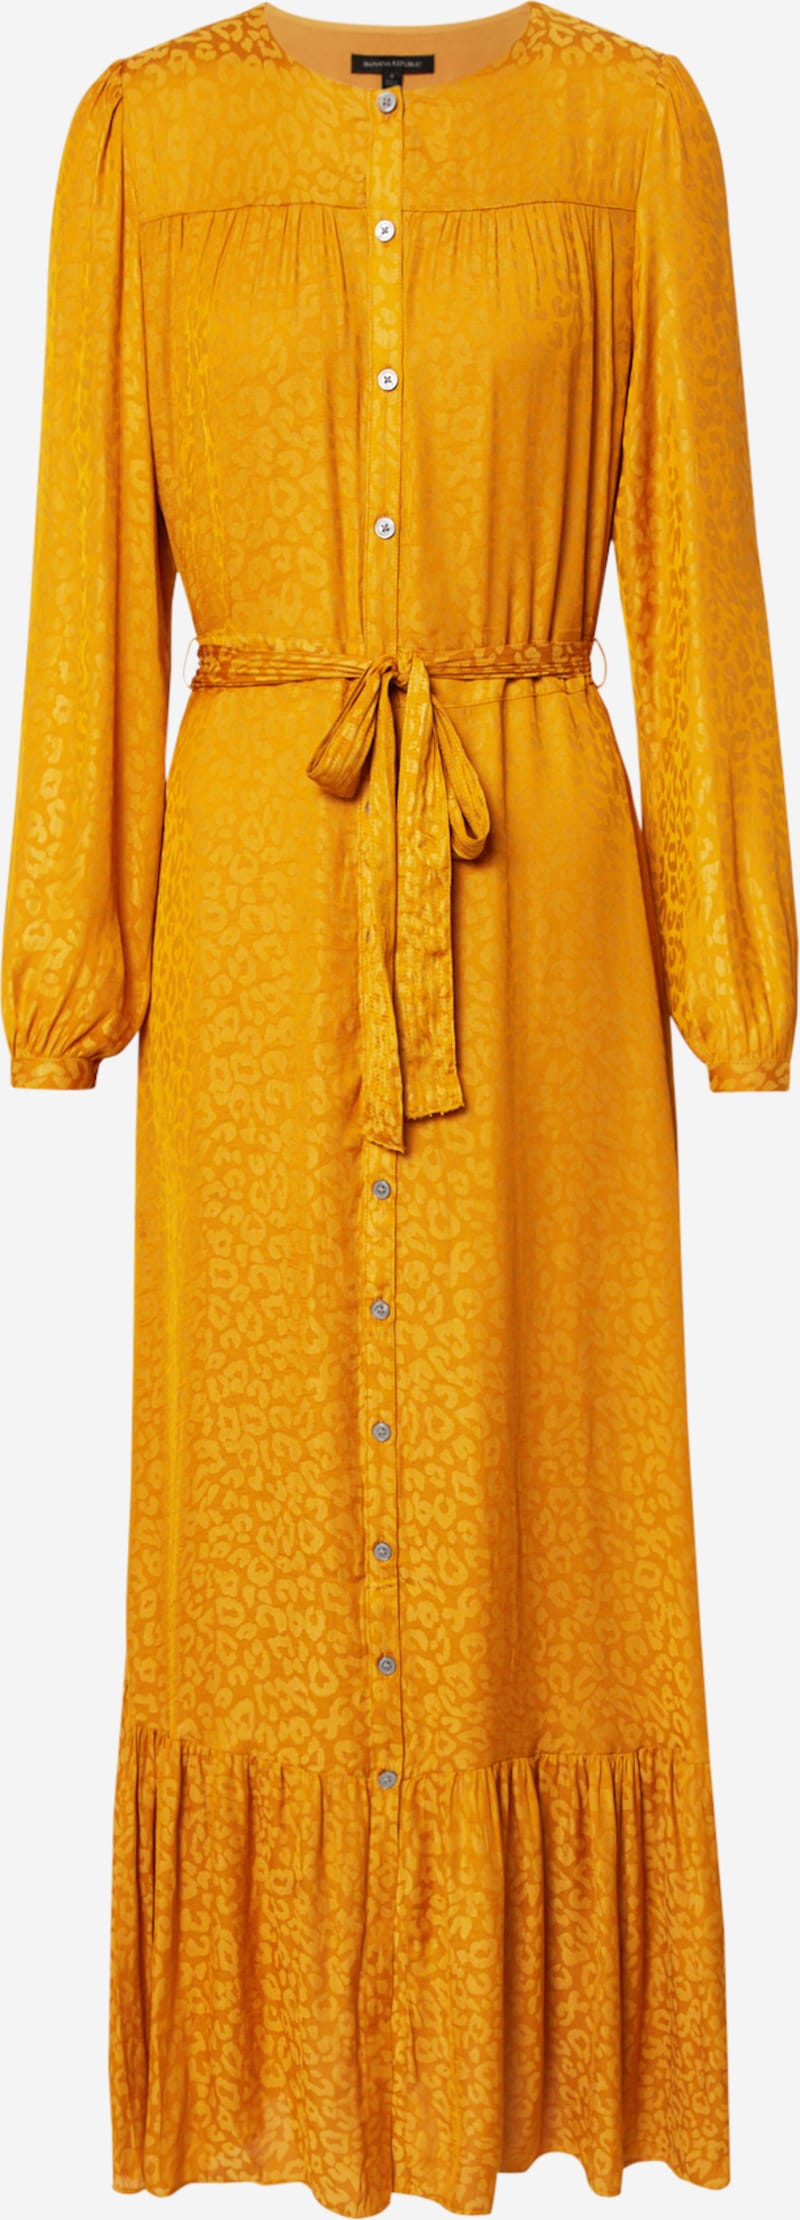 banana republic kleid coat